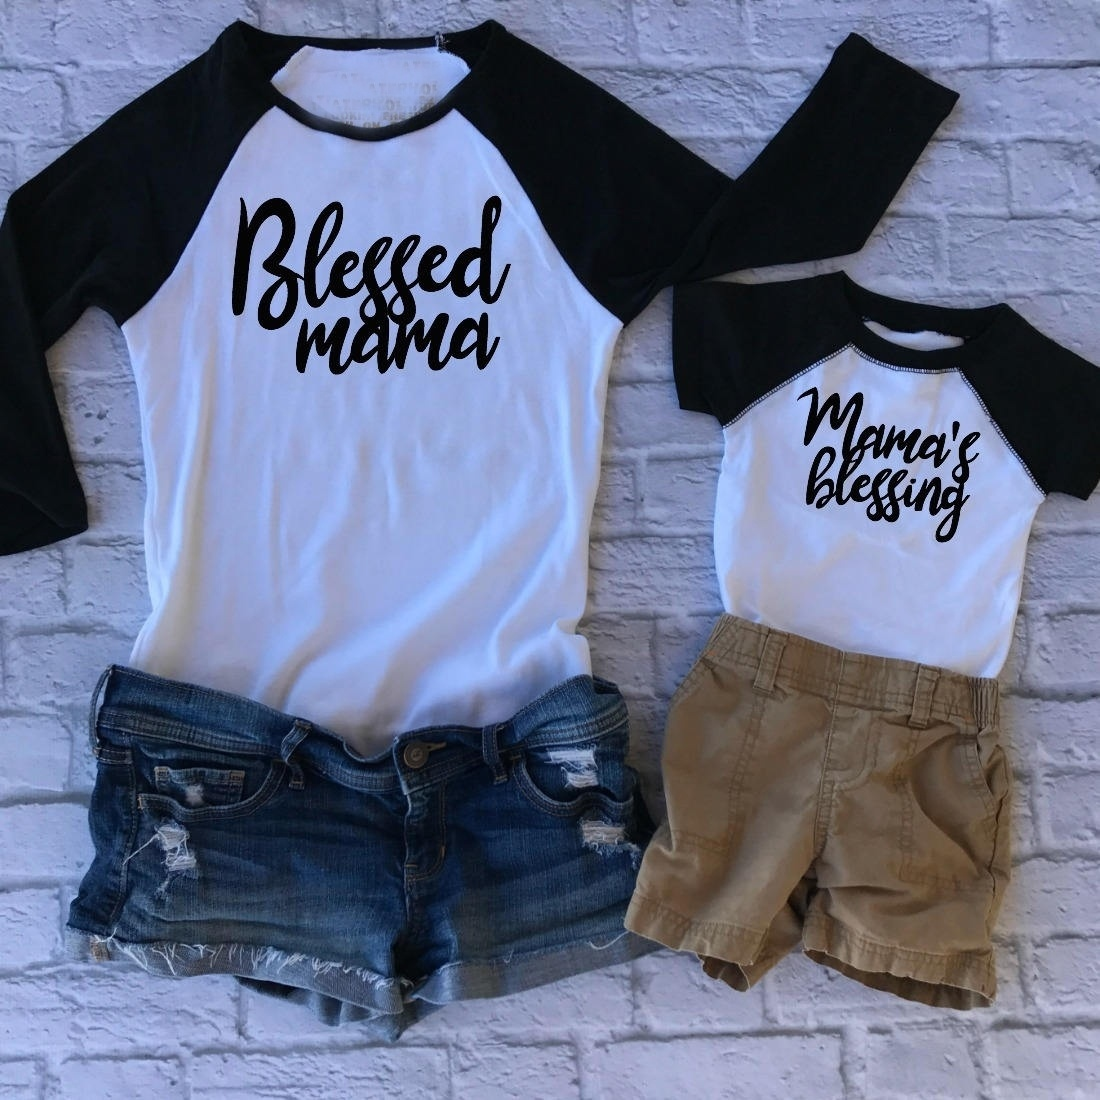 HAHAYULE-JBH 1PC Mother Blessed Mama Blessing Tee Summer time Fashion Household Matching Outfits Garments Set Mom T-shirt Child Lengthy Sleeve Matching Household Outfits, Low-cost Matching Household Outfits, HAHAYULE JBH...